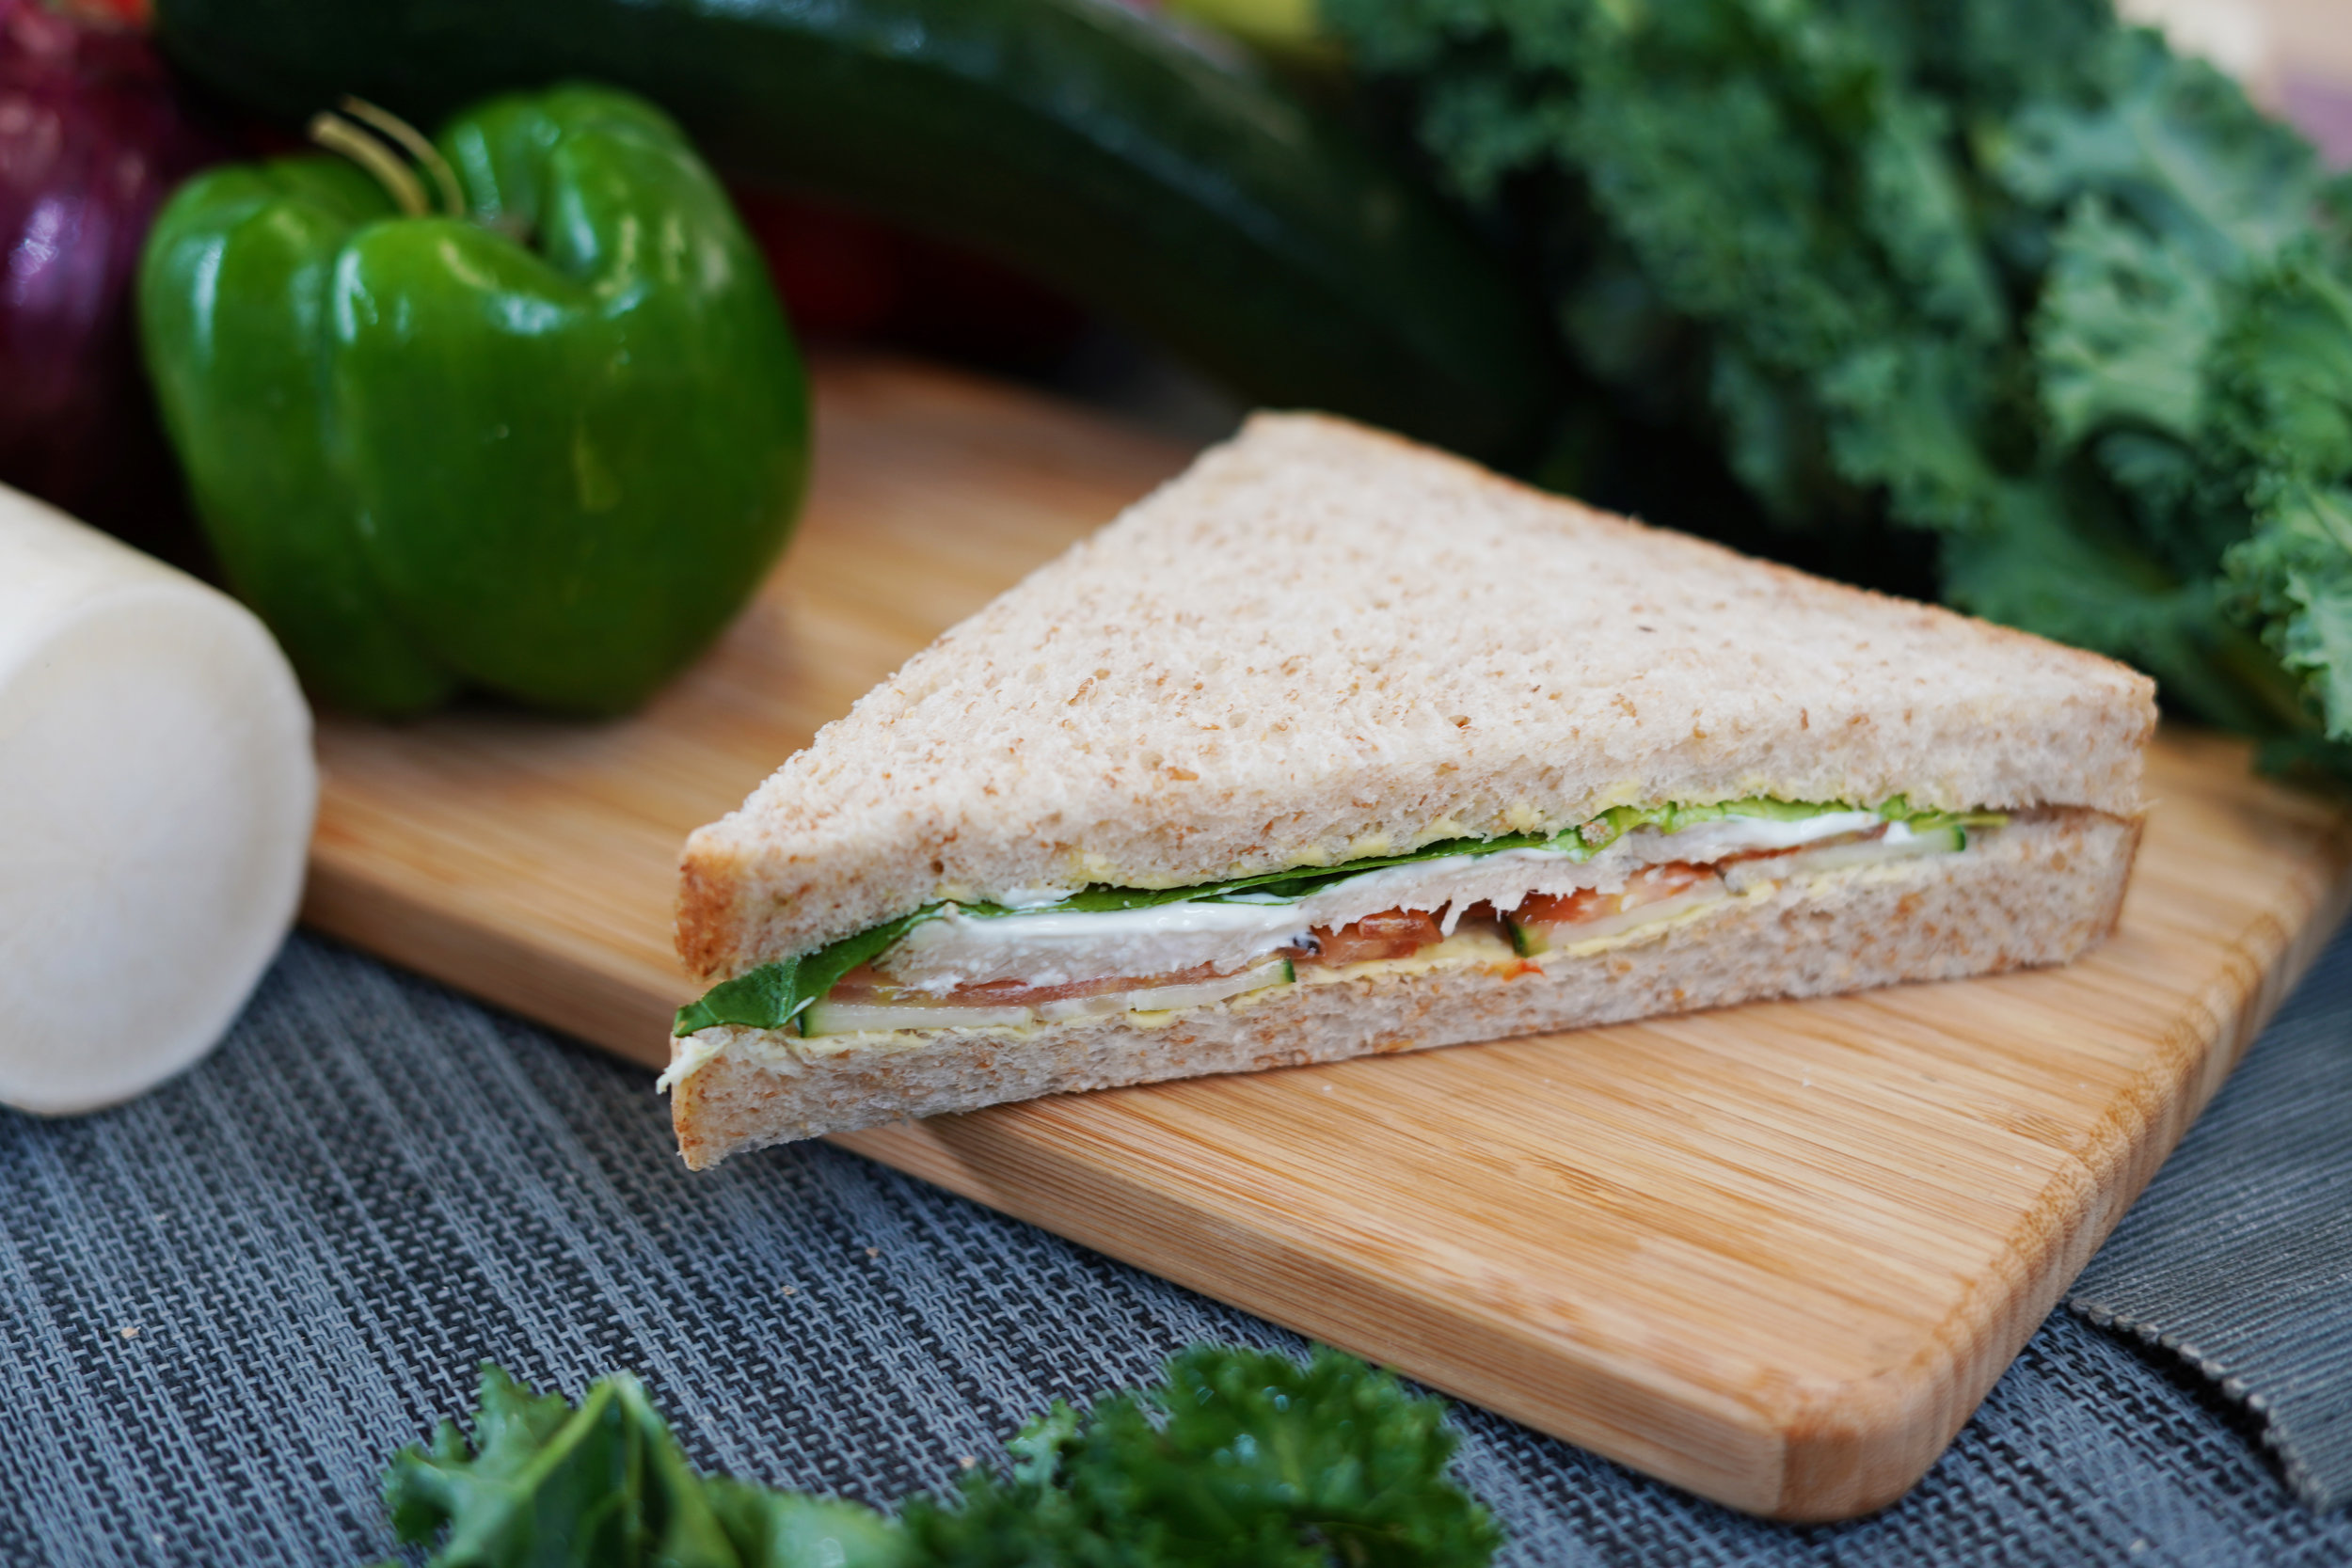 CHICKEN SANDWICH - 202.4 KCAL PER SERVINGHerbed Chicken Breast, Tomato, Cucumber, Lettuce Butter, Whole Wheat Bread$25